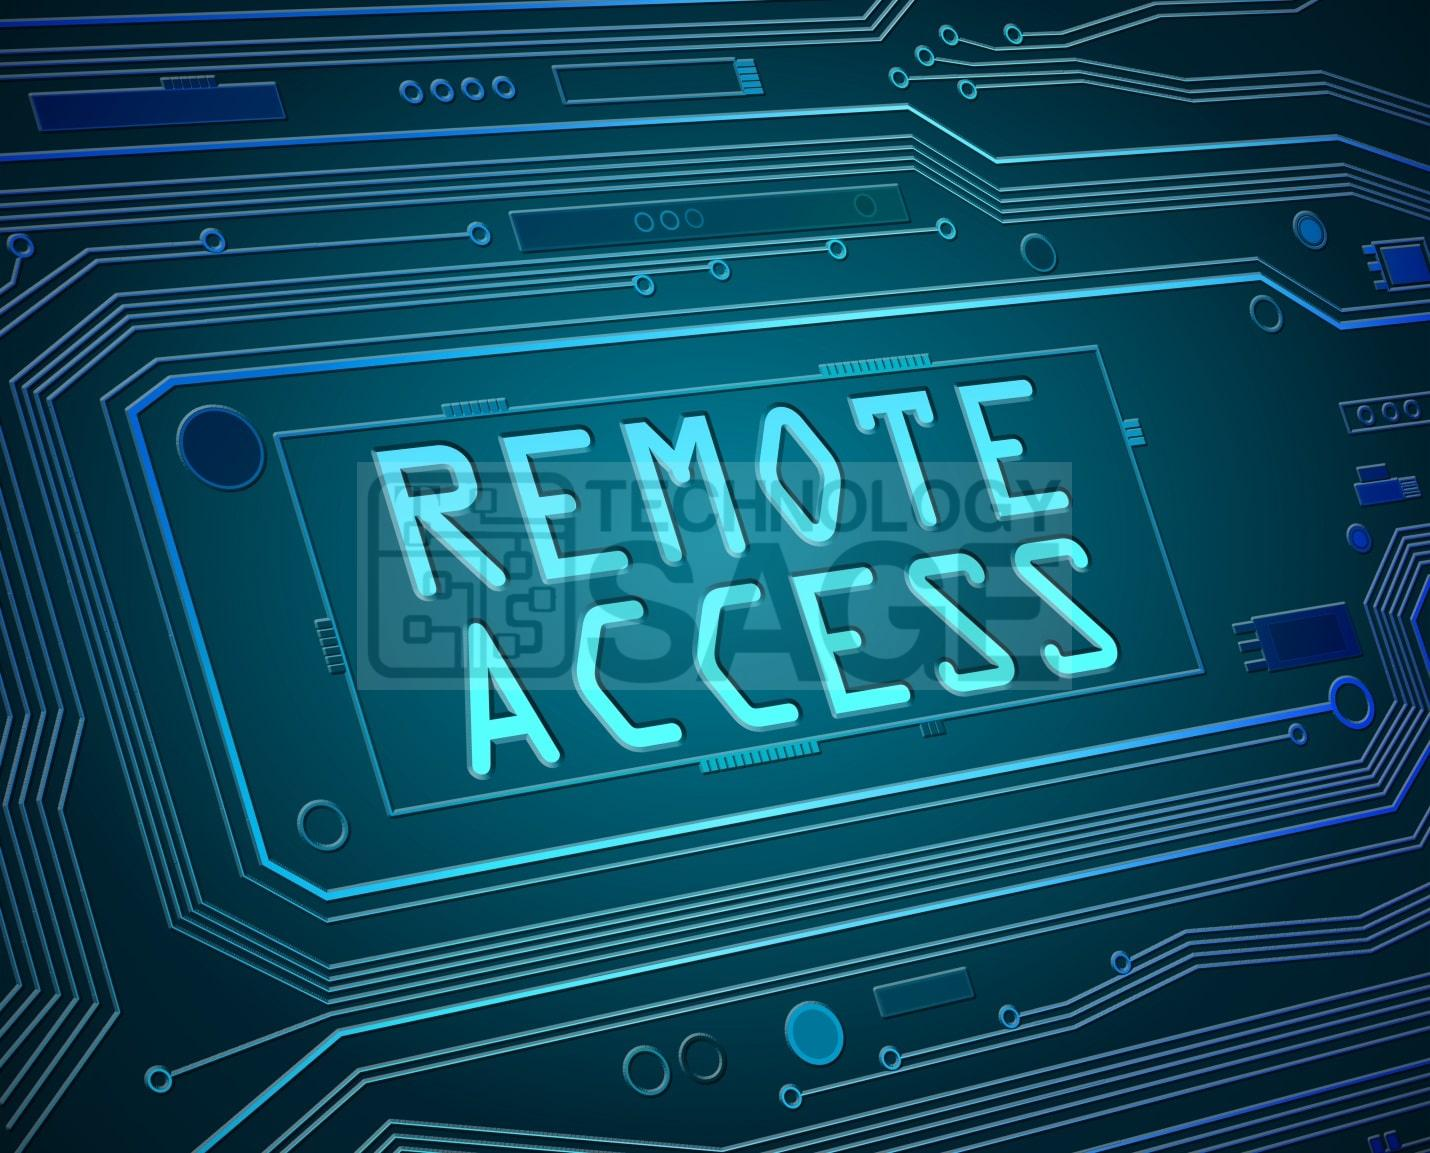 C:\Users\Kathir\Pictures\5 Best Remote Access Software Programs and Why Your Business Needs It.jpg